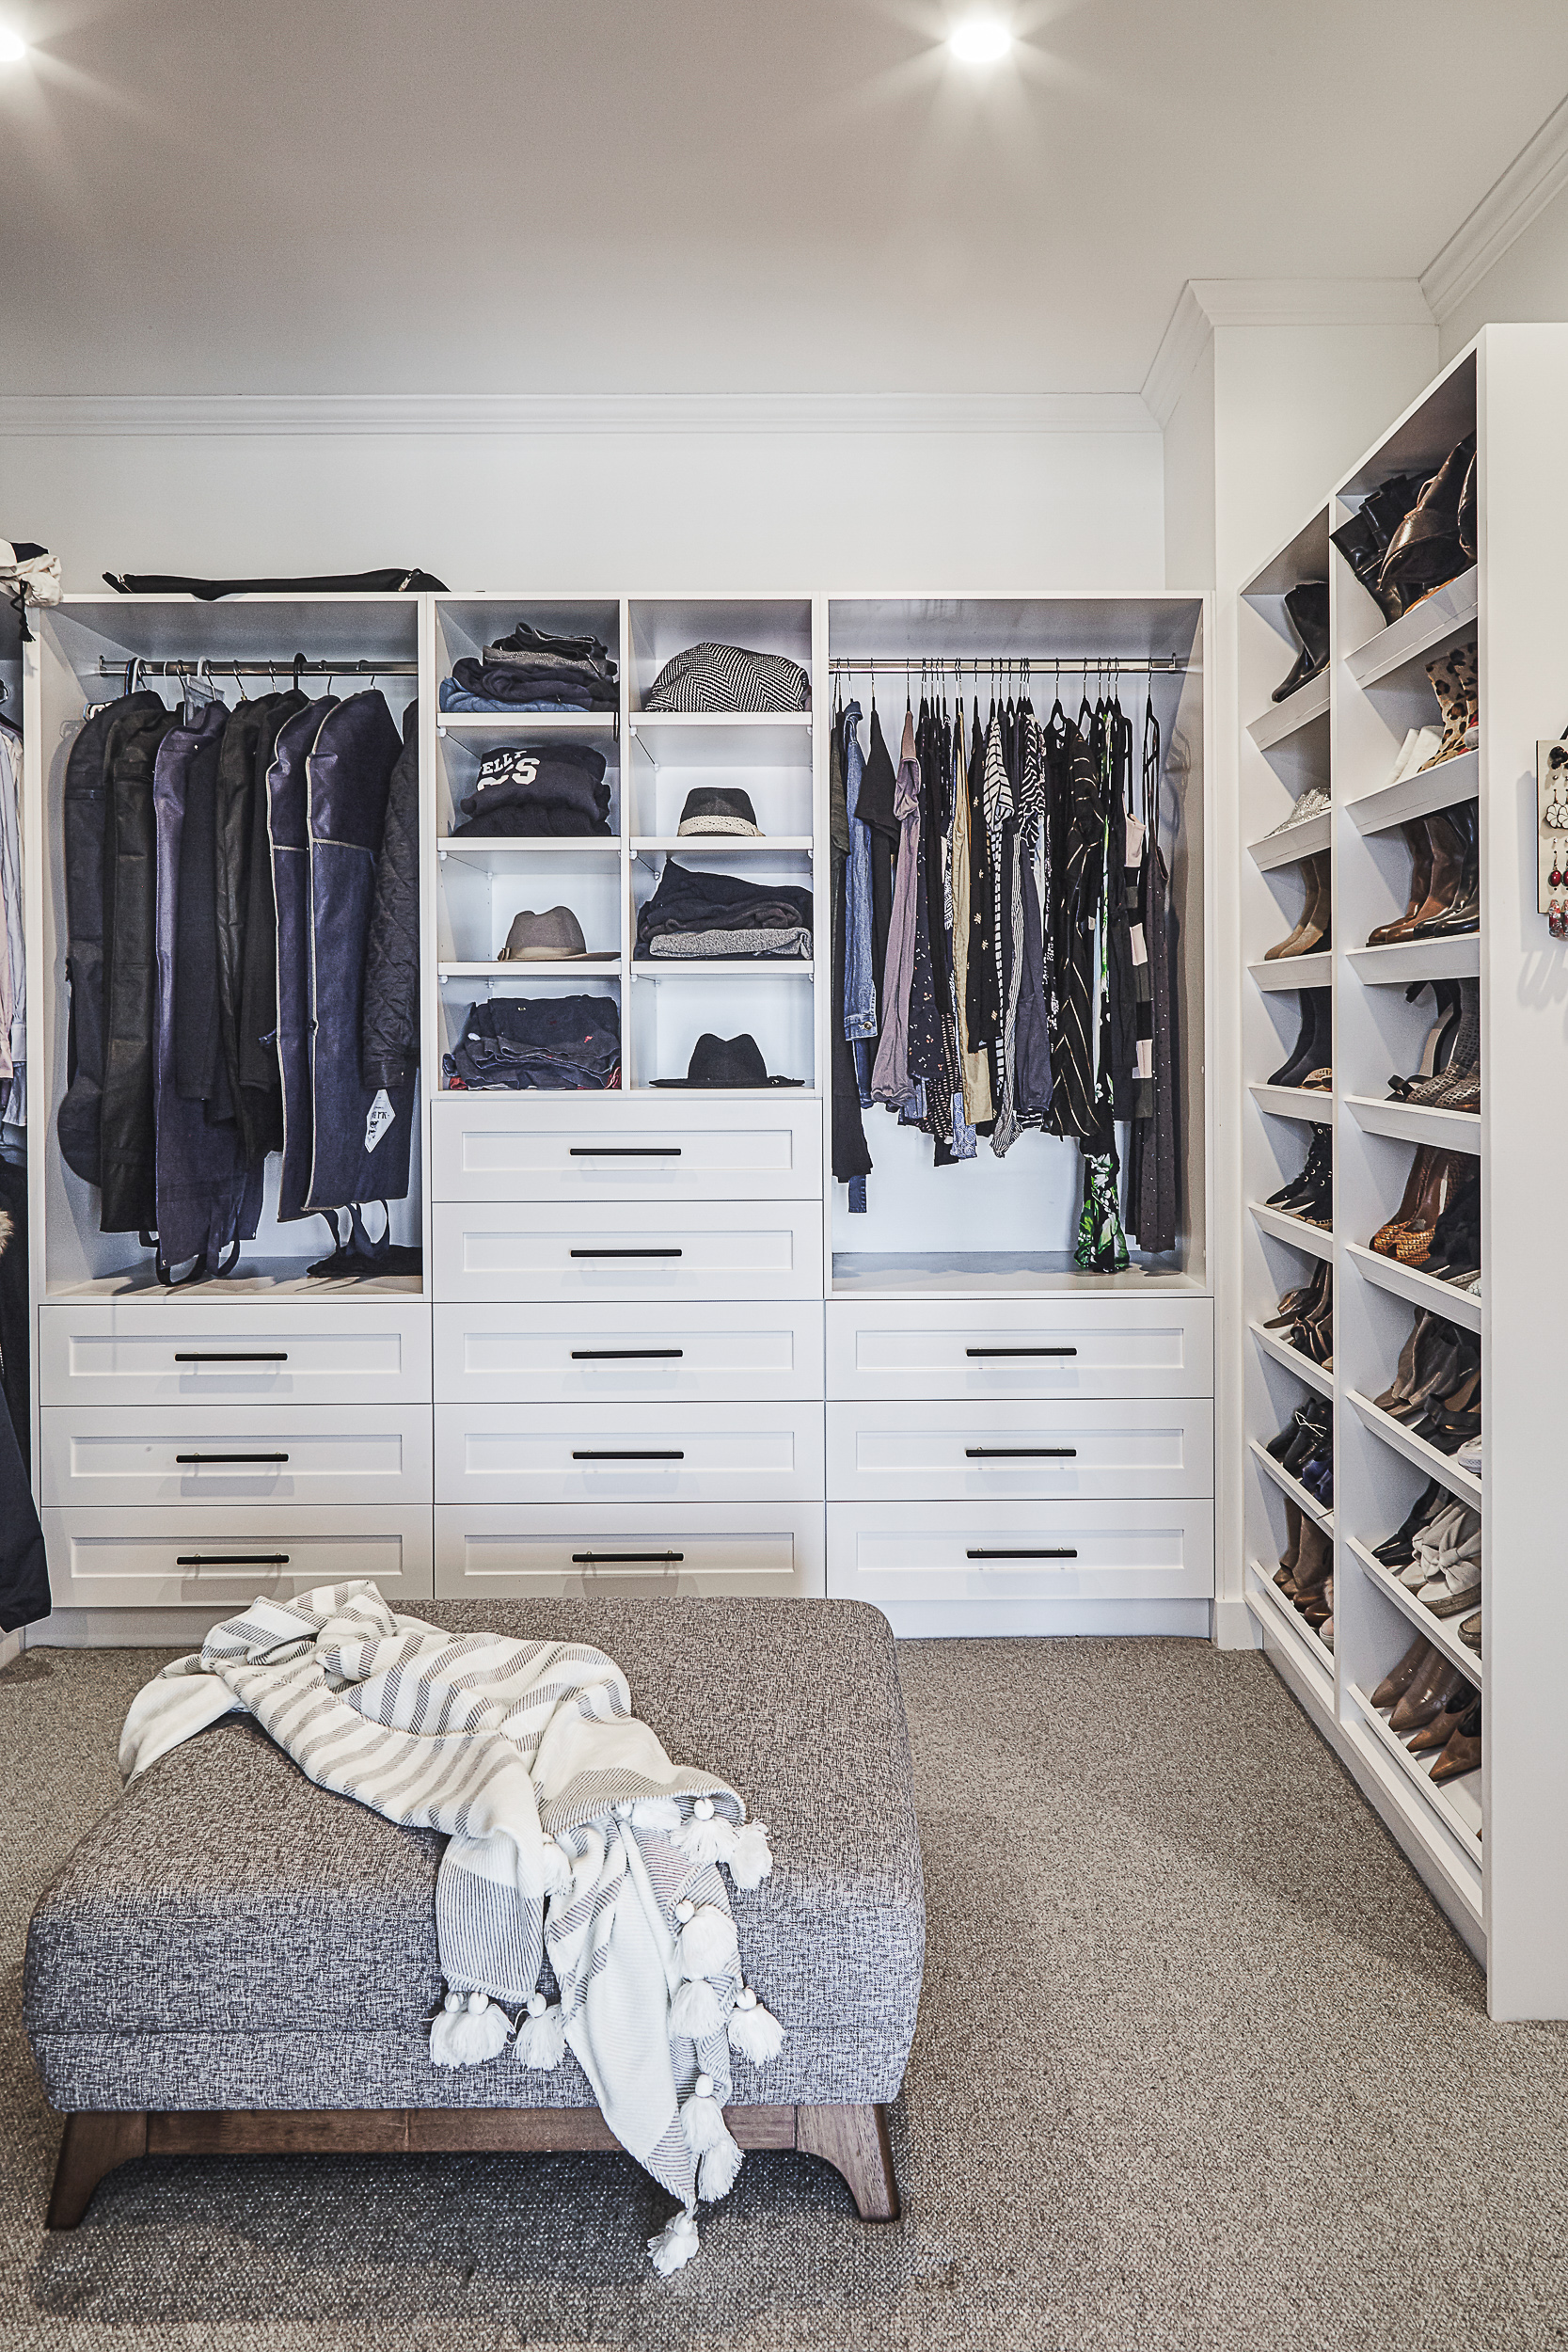 Balnei & Colina walk-in wardrobe